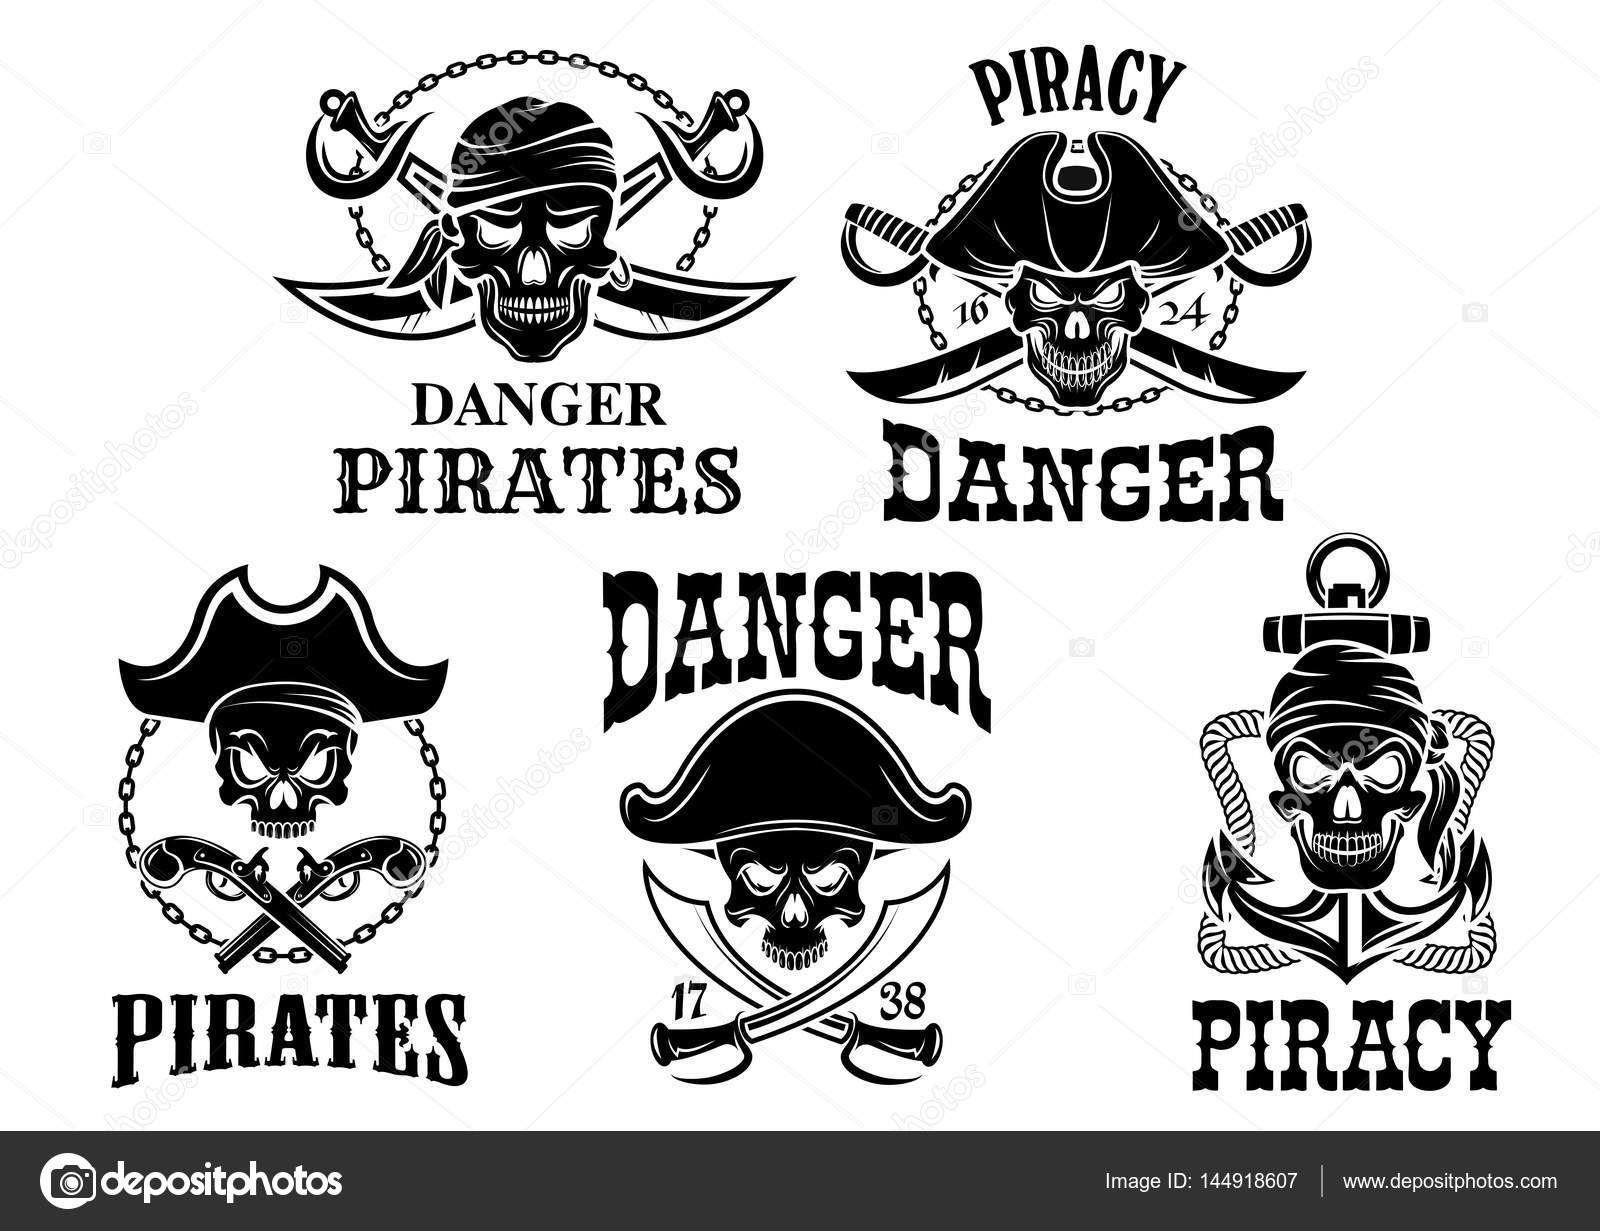 Jolly roger pirate vector icons set stock vector seamartini piracy sailor or robber symbols or emblems of swords sabers and pistol guns ship anchor and buycottarizona